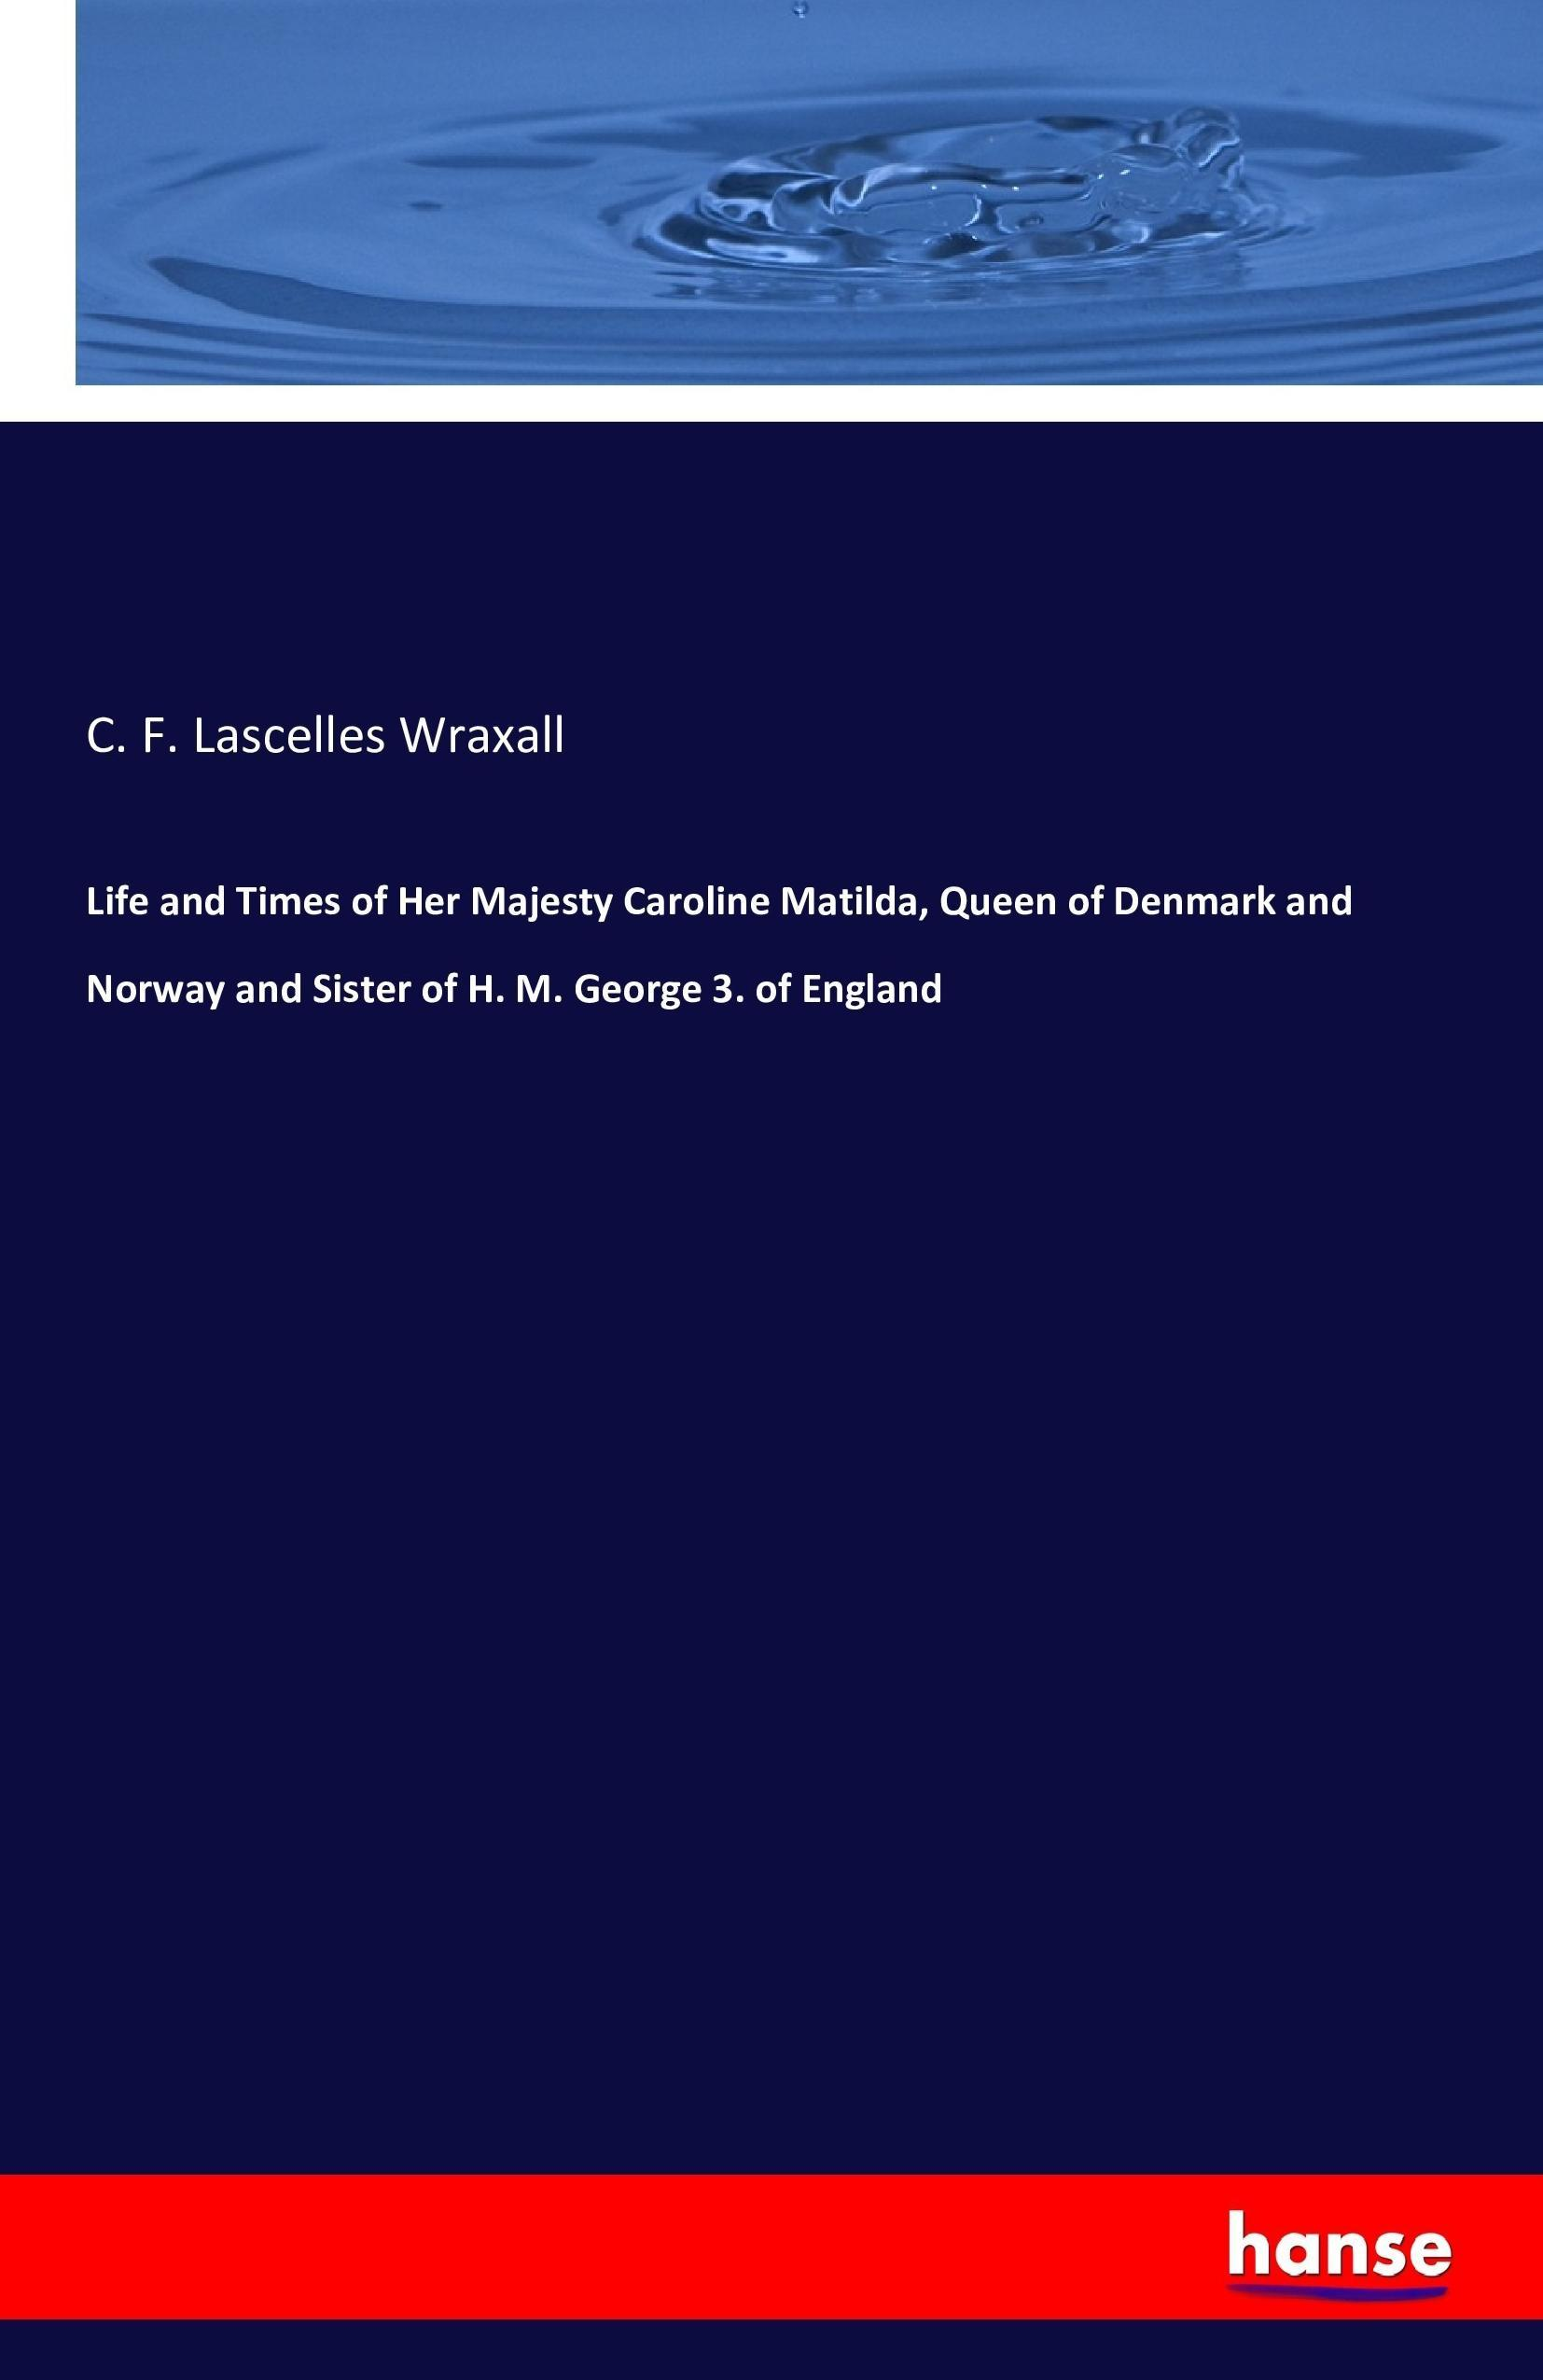 C. F. Lascelles Wraxall / Life and Times of Her Majesty Caroli ... 9783741144448